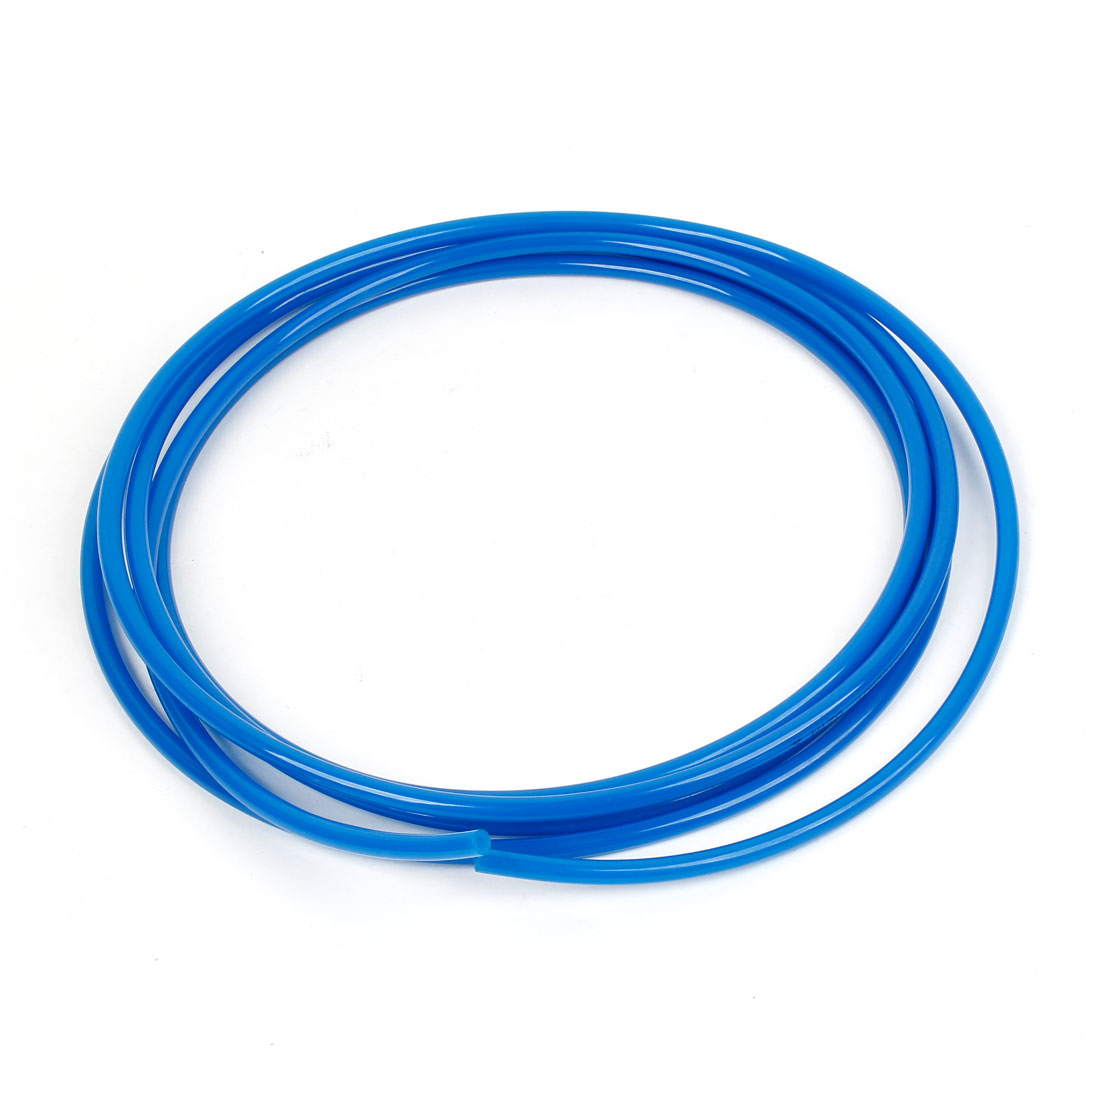 Unique Bargains Blue 8mm OD 5mm ID 5 Meter 16.4Ft Pneumatic PU Air Tube Hose